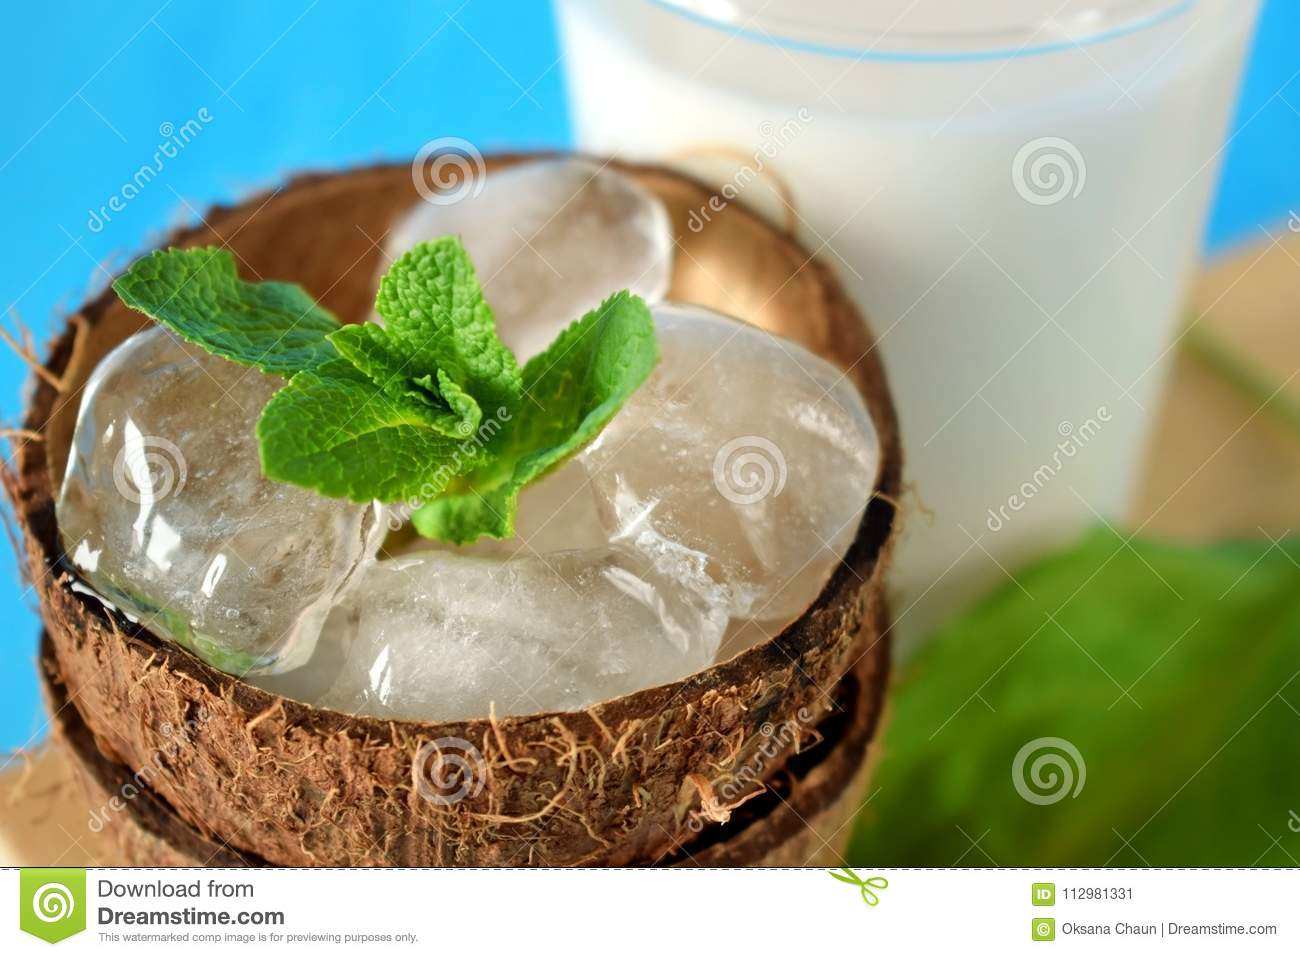 Ingredients for a tropical cocktail on blue background